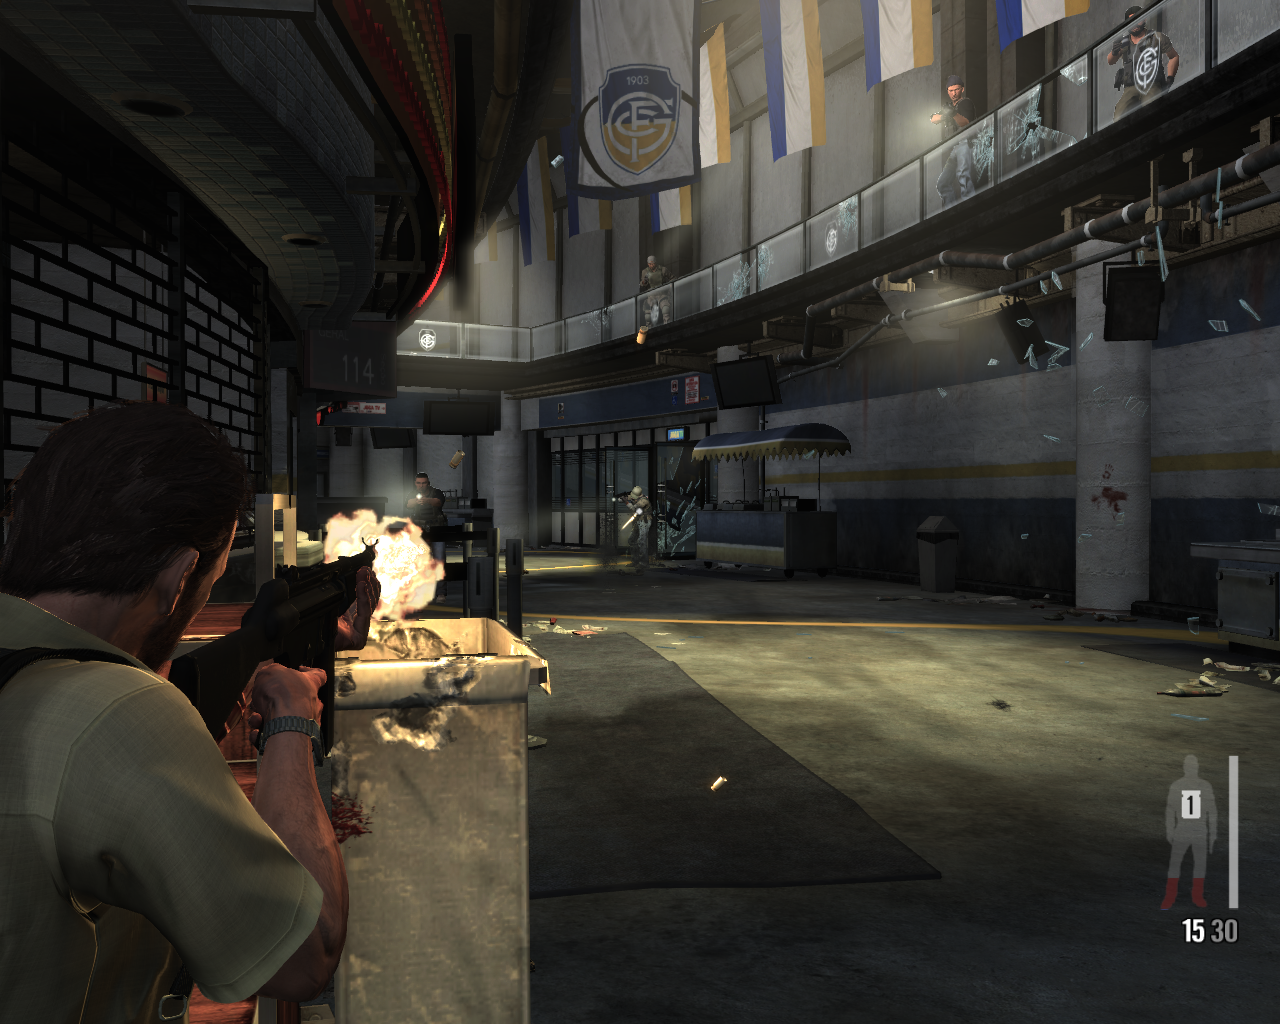 Max Payne 3 Windows An intense firefight at the back of a soccer stadium